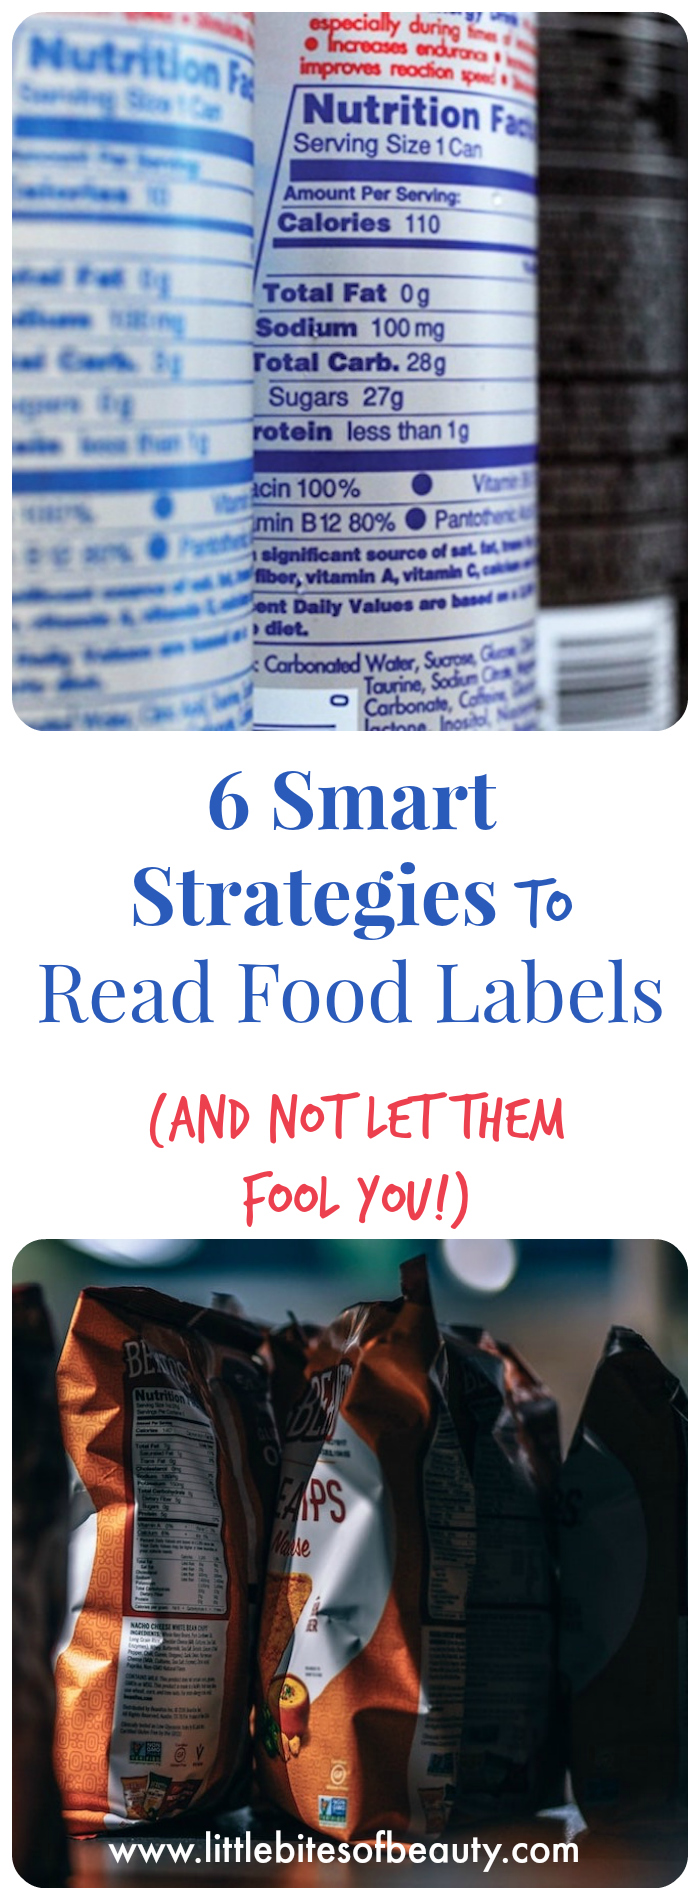 6 Smart Strategies to Read Food Labels (and NOT Let Them Fool You!)